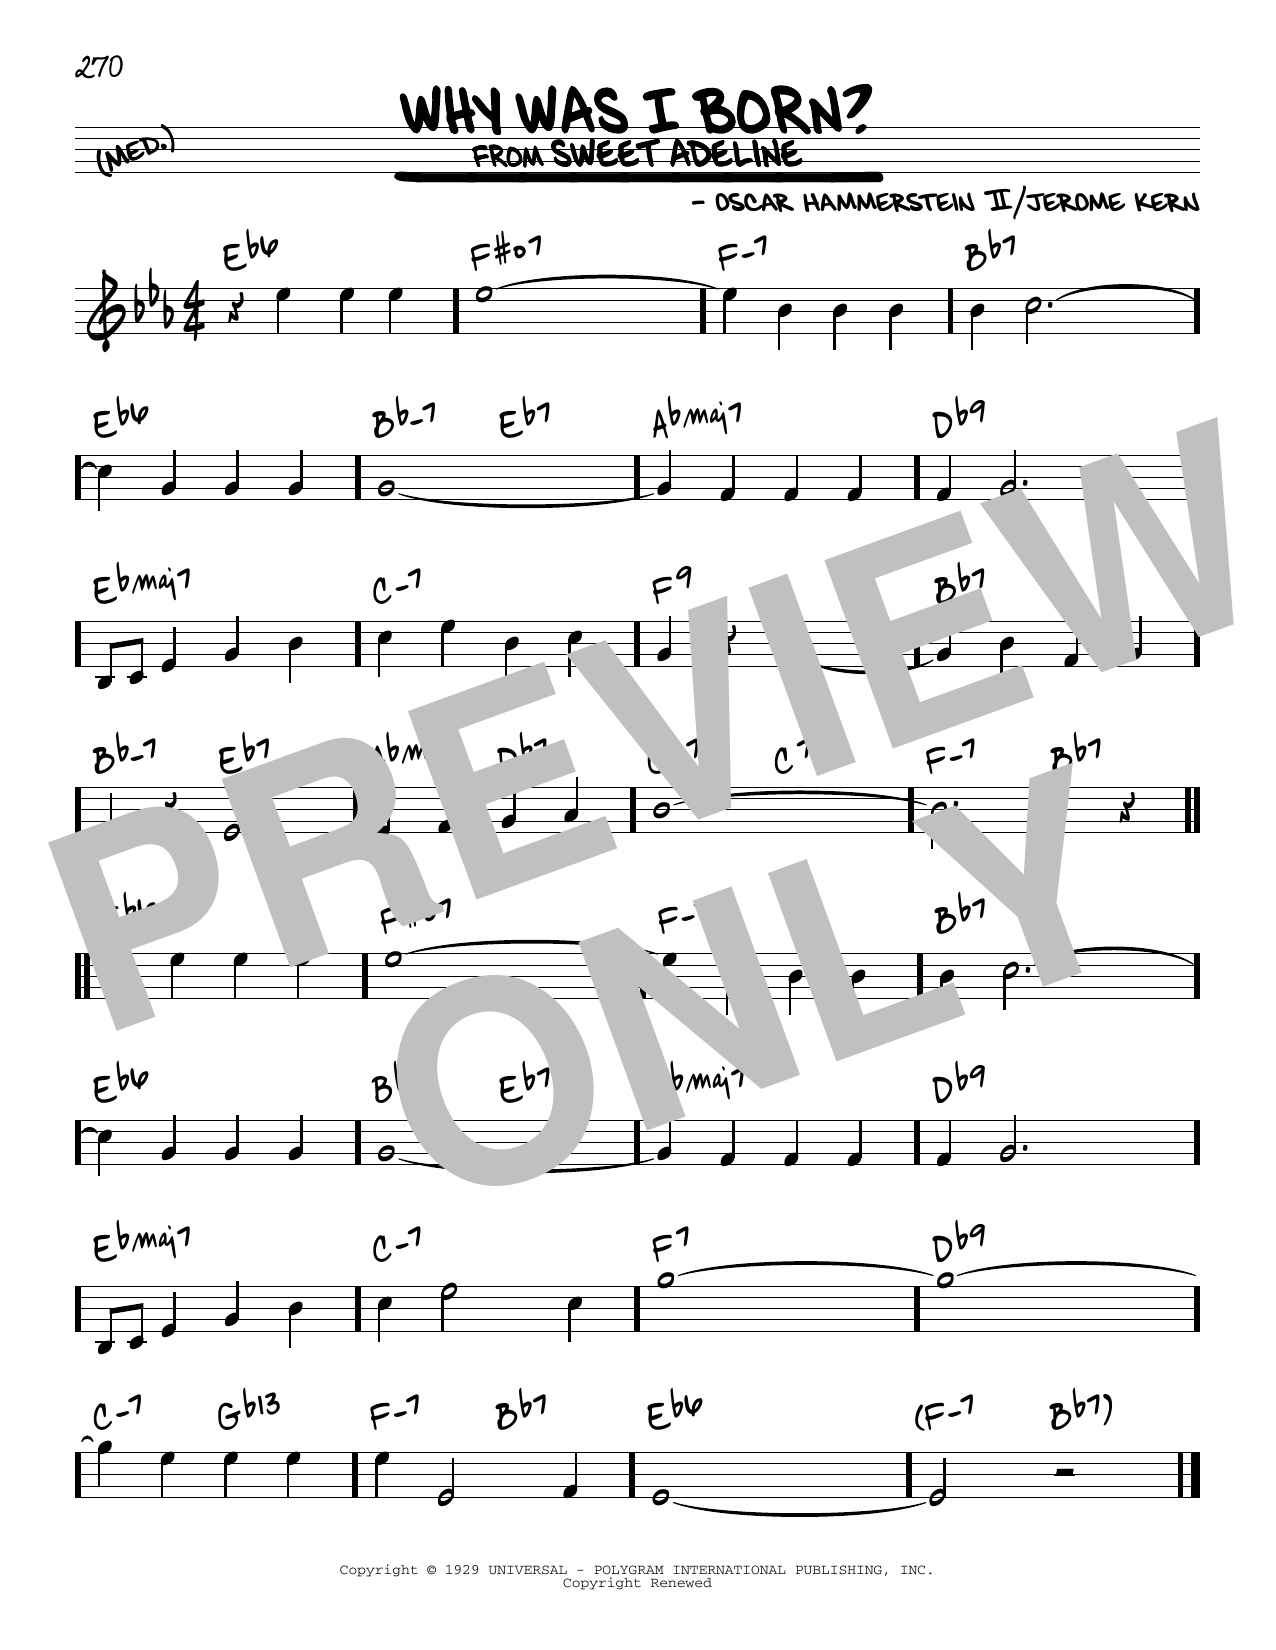 Why Was I Born? Sheet Music